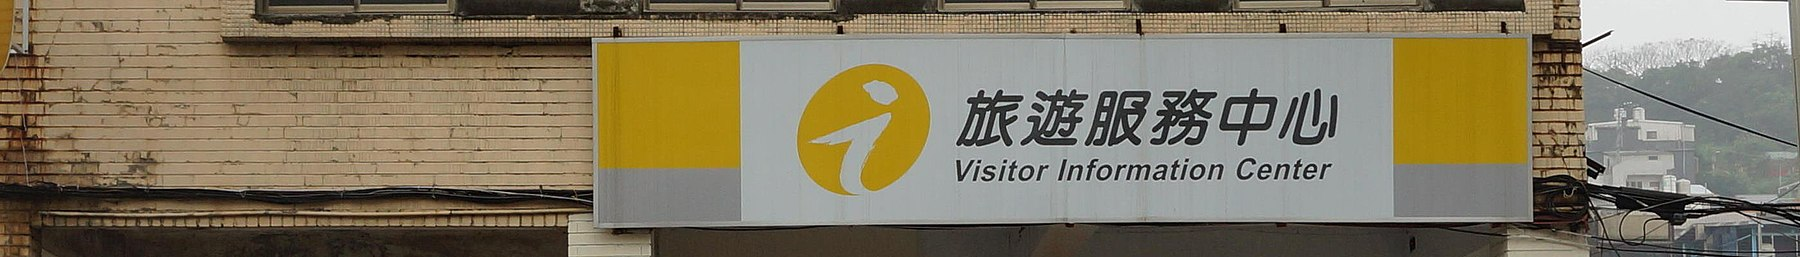 Wikivoyage Banner of Visitor Information Center.jpeg